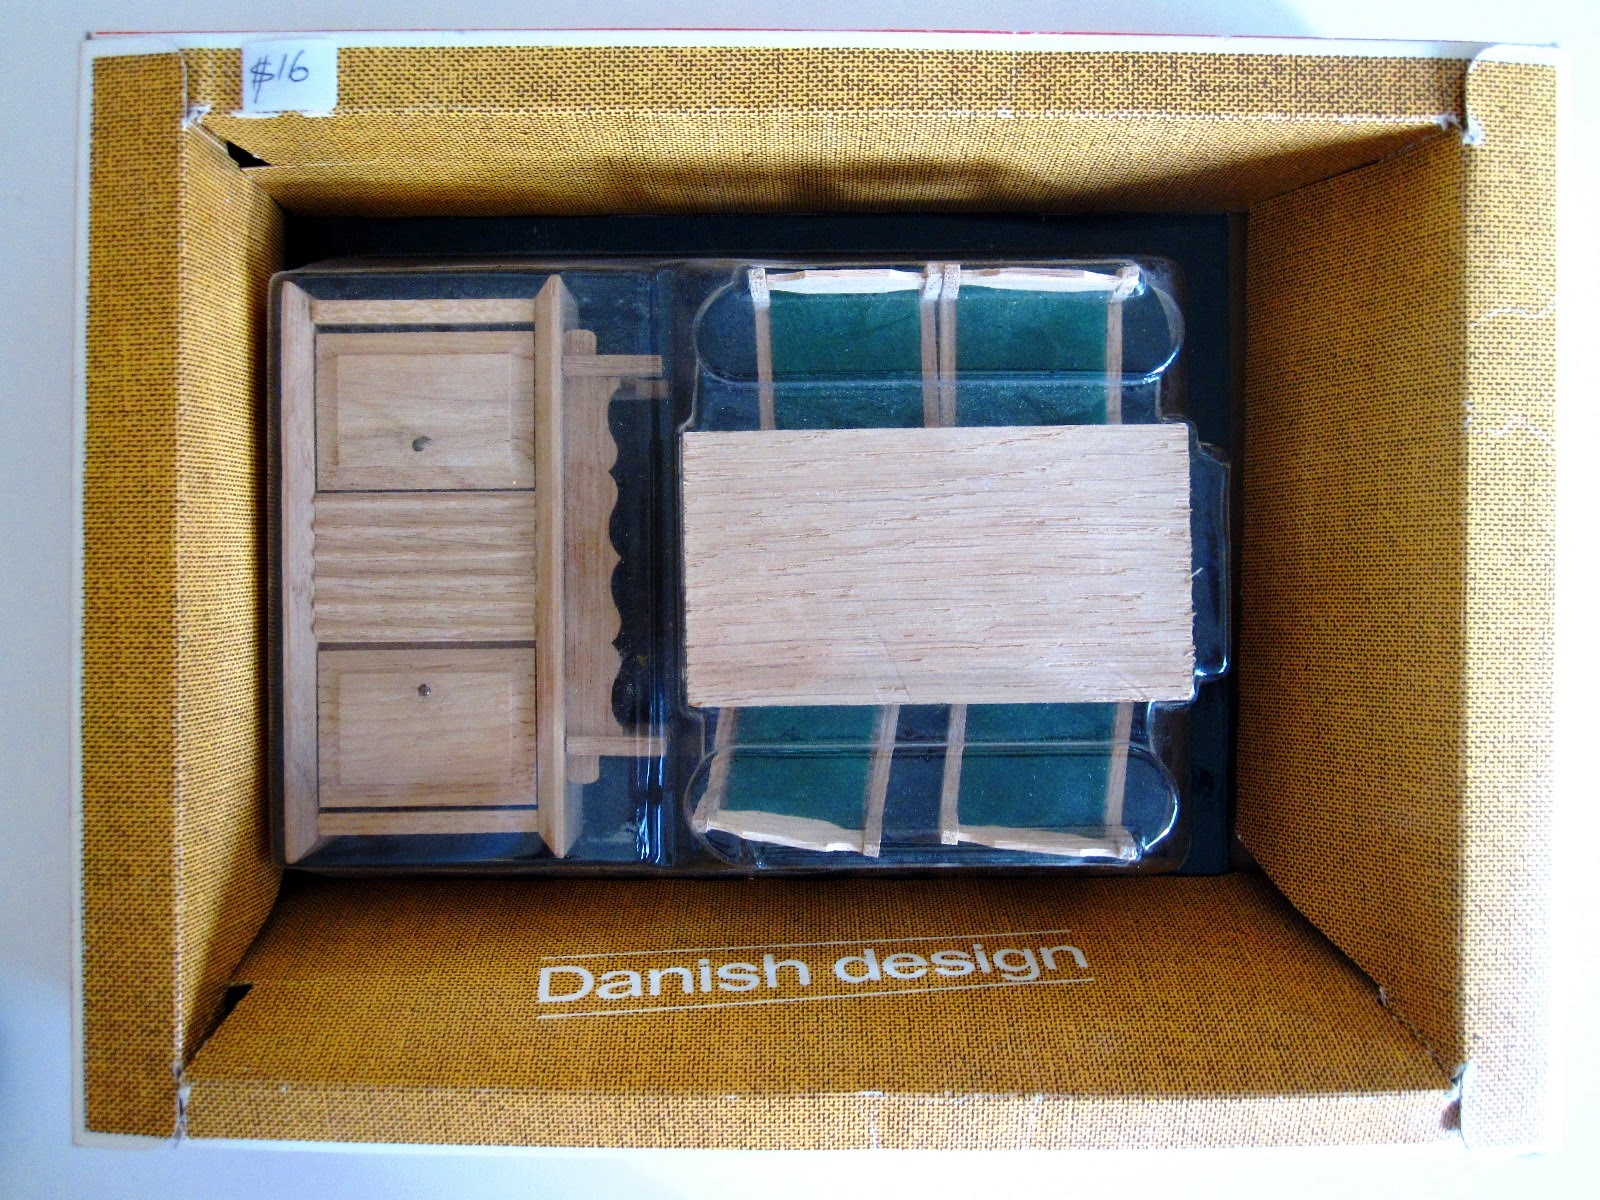 Hanse vintage dolls' house dining room in original packaging,